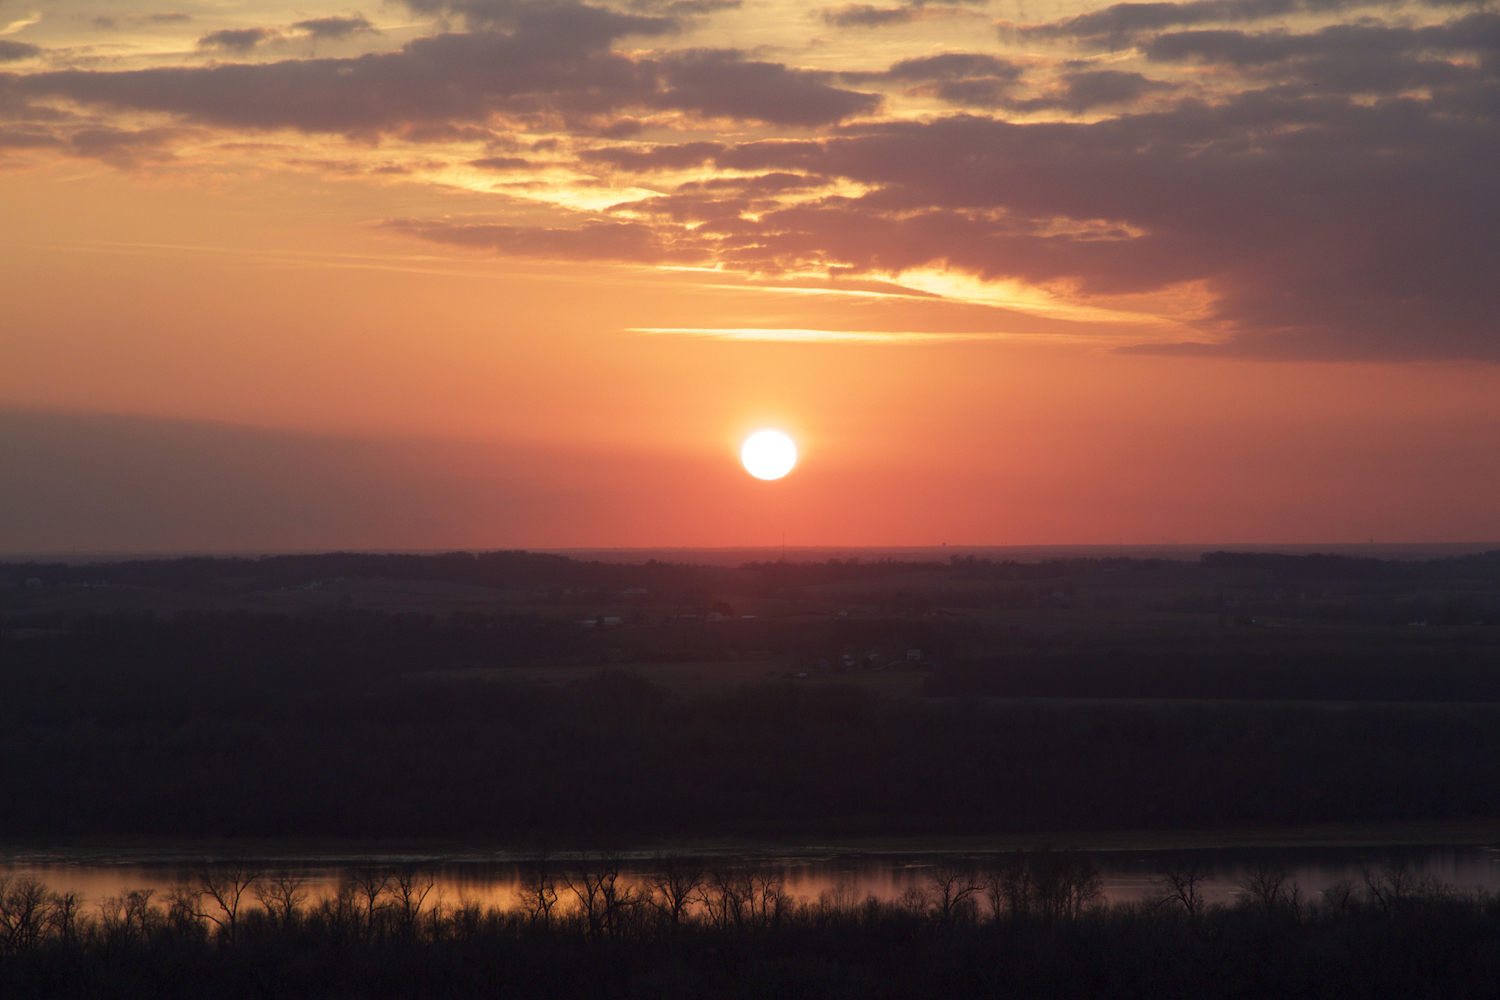 Sunset over the Illinois River at Pere Marquette State Park, near Grafton, IL.